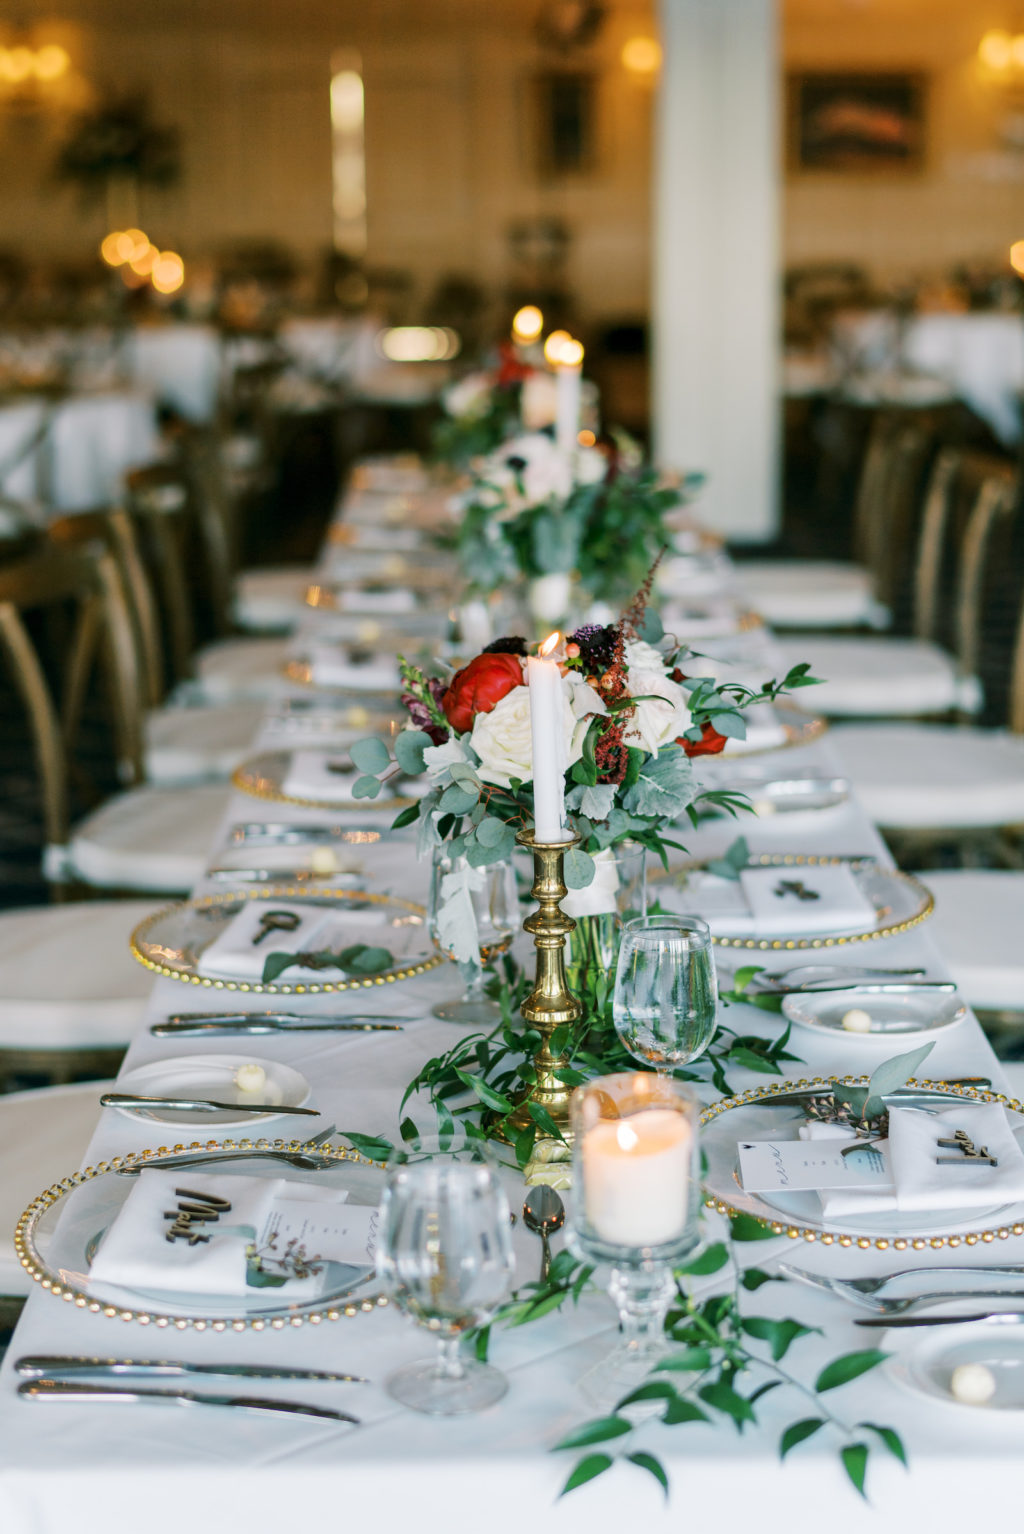 Romantic Rustic Wedding Reception Decor, Long Feasting Table with White Linens, Gold Beaded and Clear Chargers, Gold Candlesticks, Low Red and White Ivory Floral Centerpiece, Greenery Leaves Garland   Tampa Bay Wedding Rentals A Chair Affair